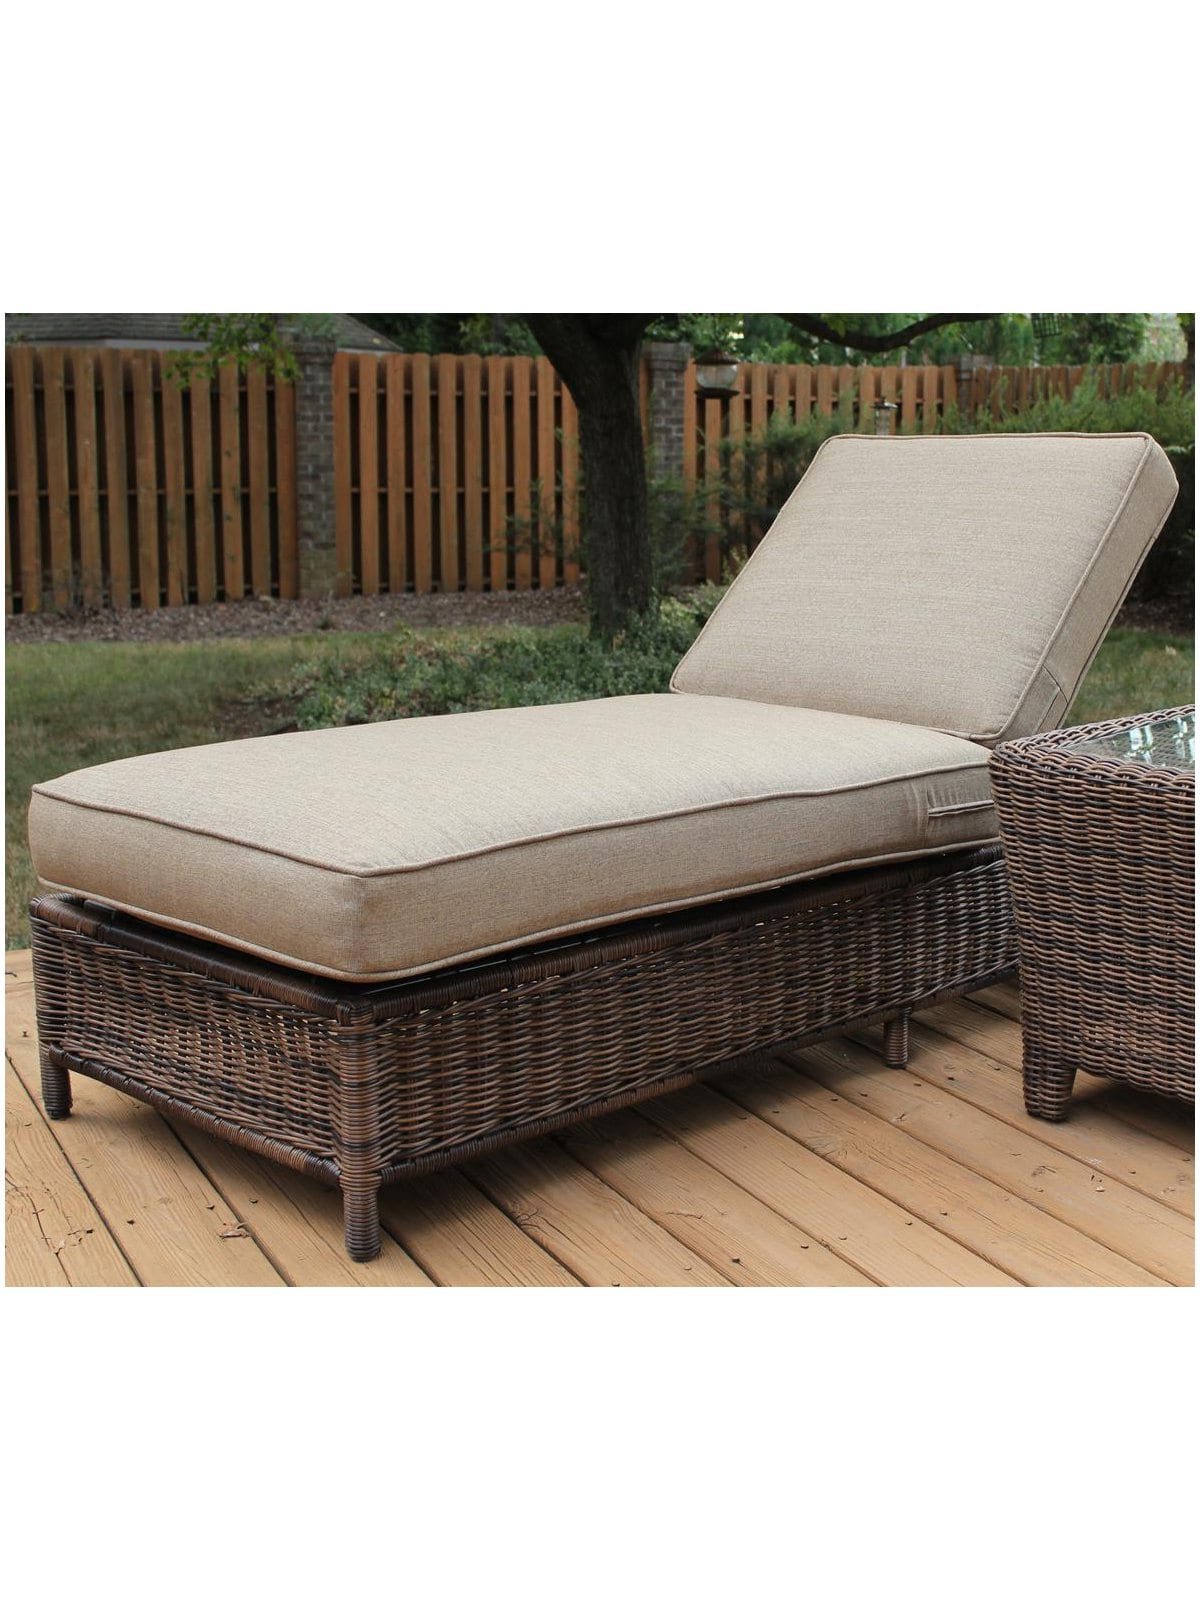 Best And Newest Jamaica Outdoor Wicker Chaise Lounges With Cushion With Regard To Catalina Wicker Chaise Lounge (View 25 of 25)